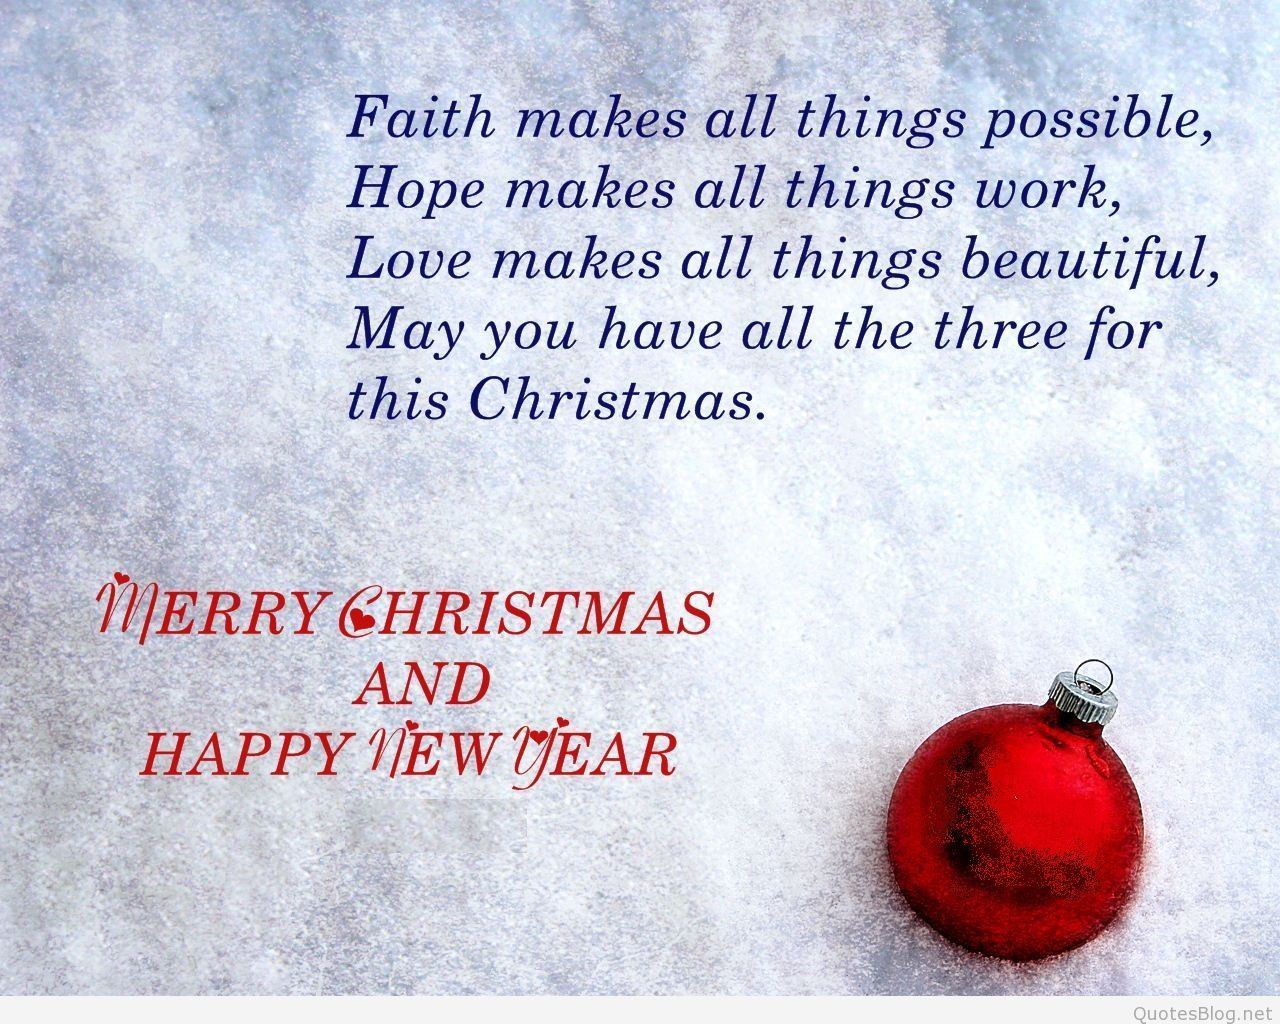 Pin By Merry Christmas And Happy New On Happy New Year 2017 Christmas Quotes For Friends Quotes About New Year Christmas Quotes Funny